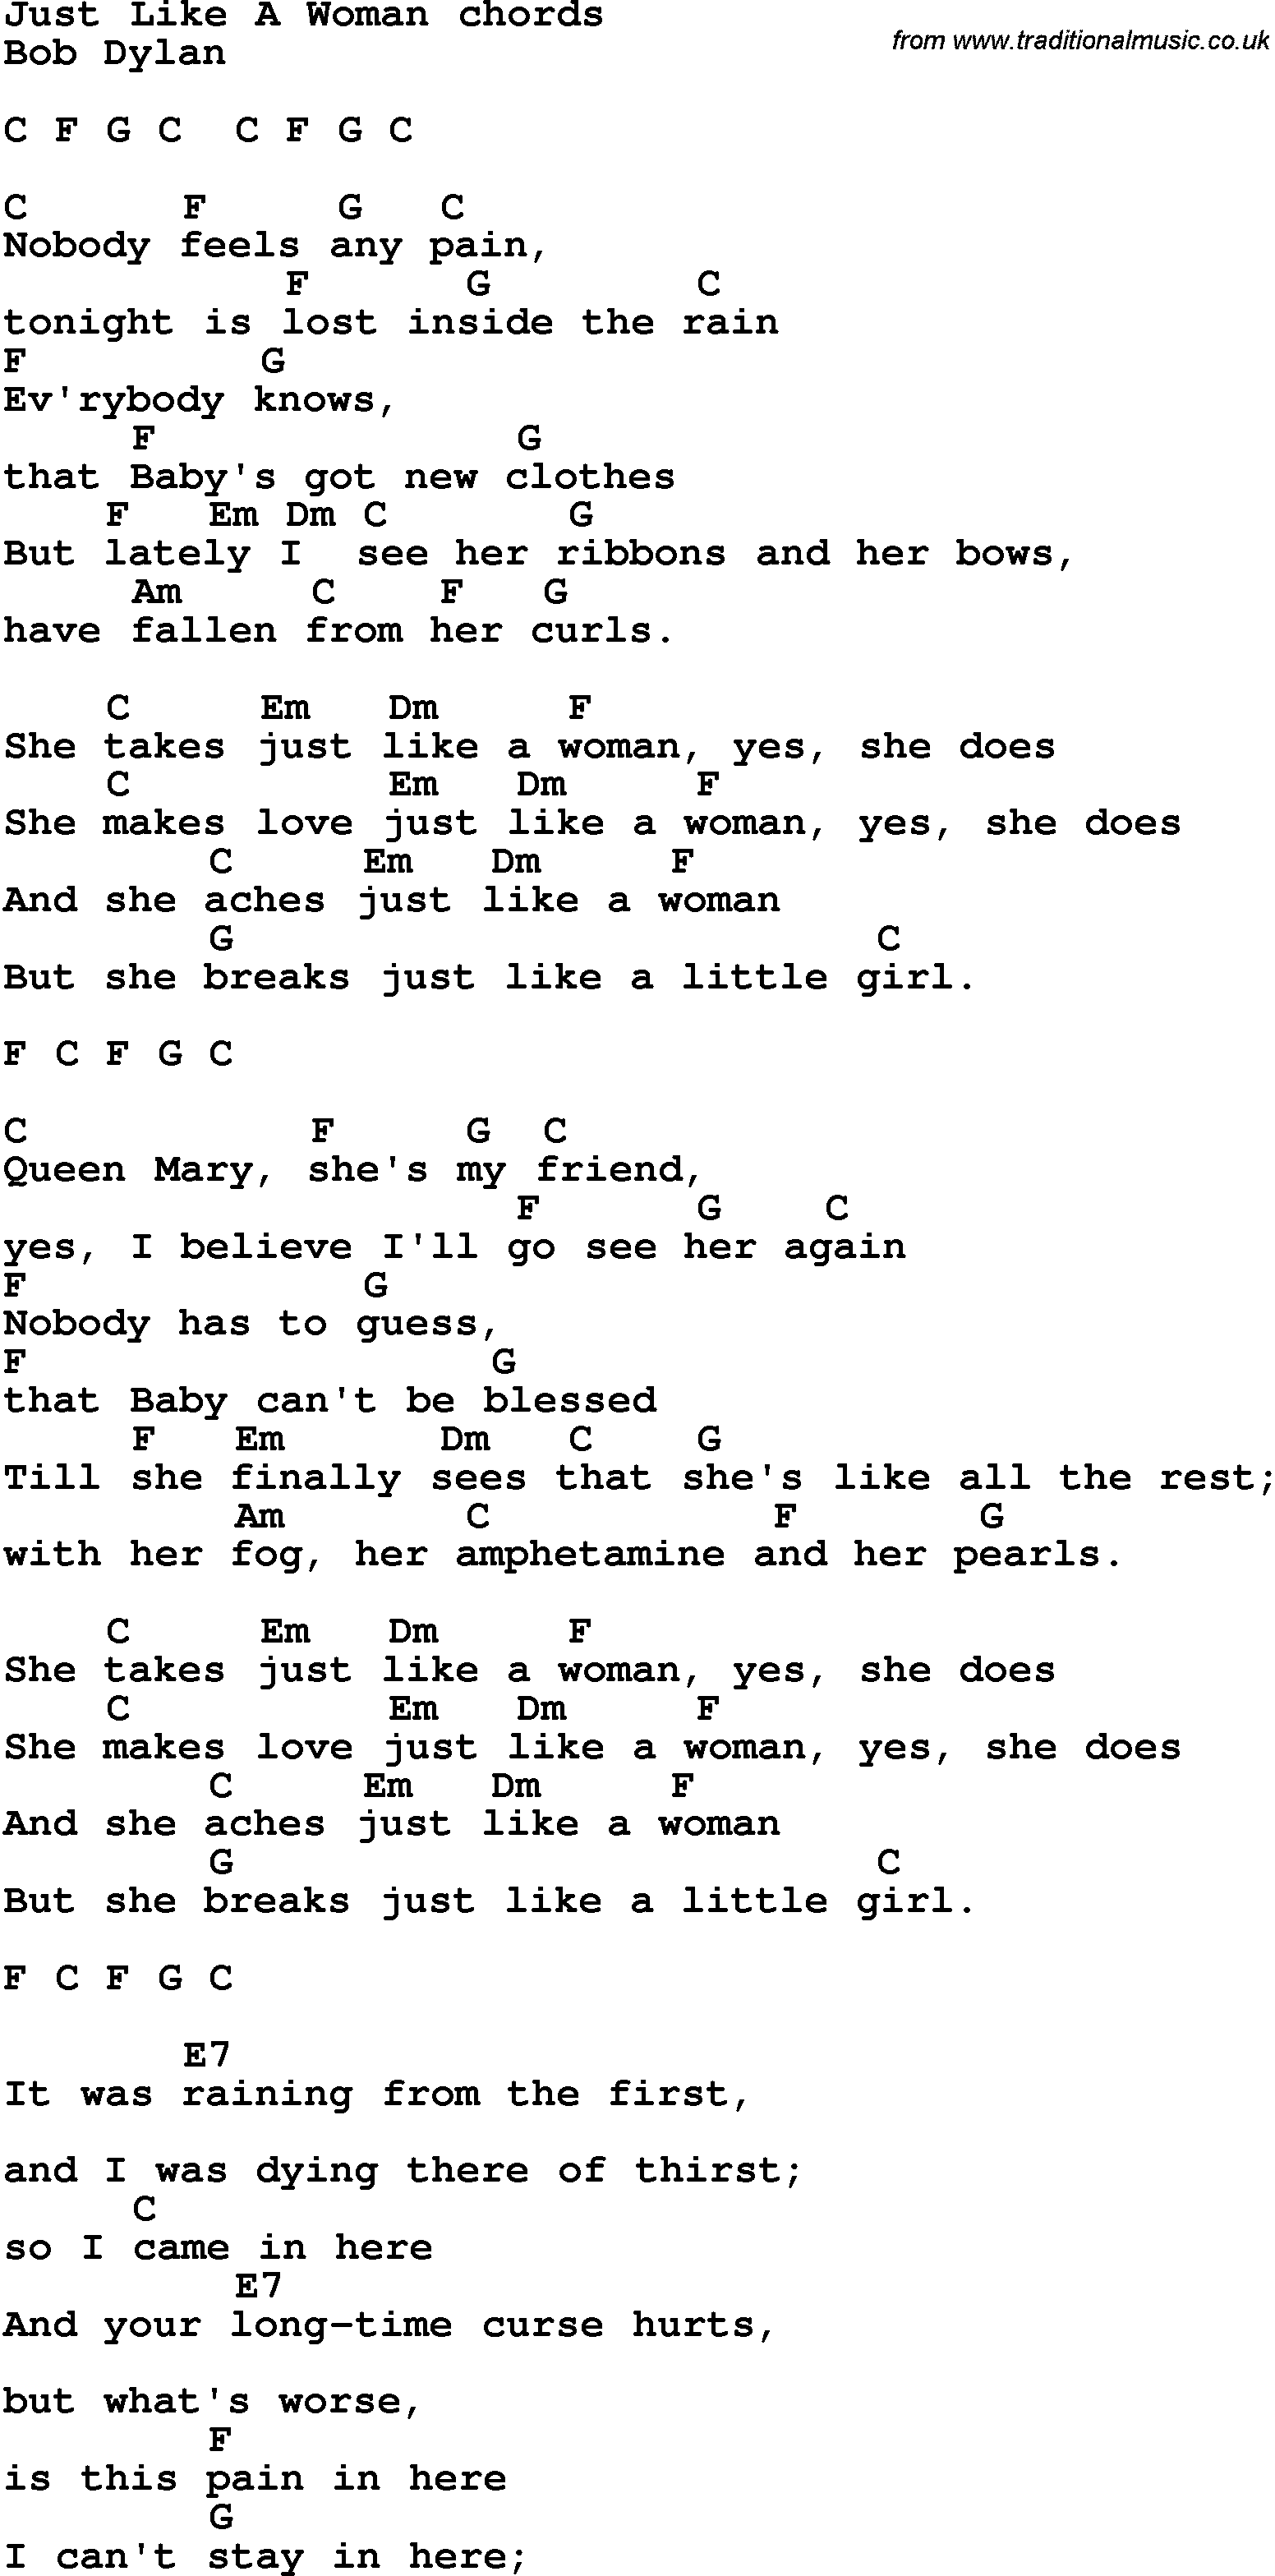 Song Lyrics With Guitar Chords For Just Like A Woman Songwriters